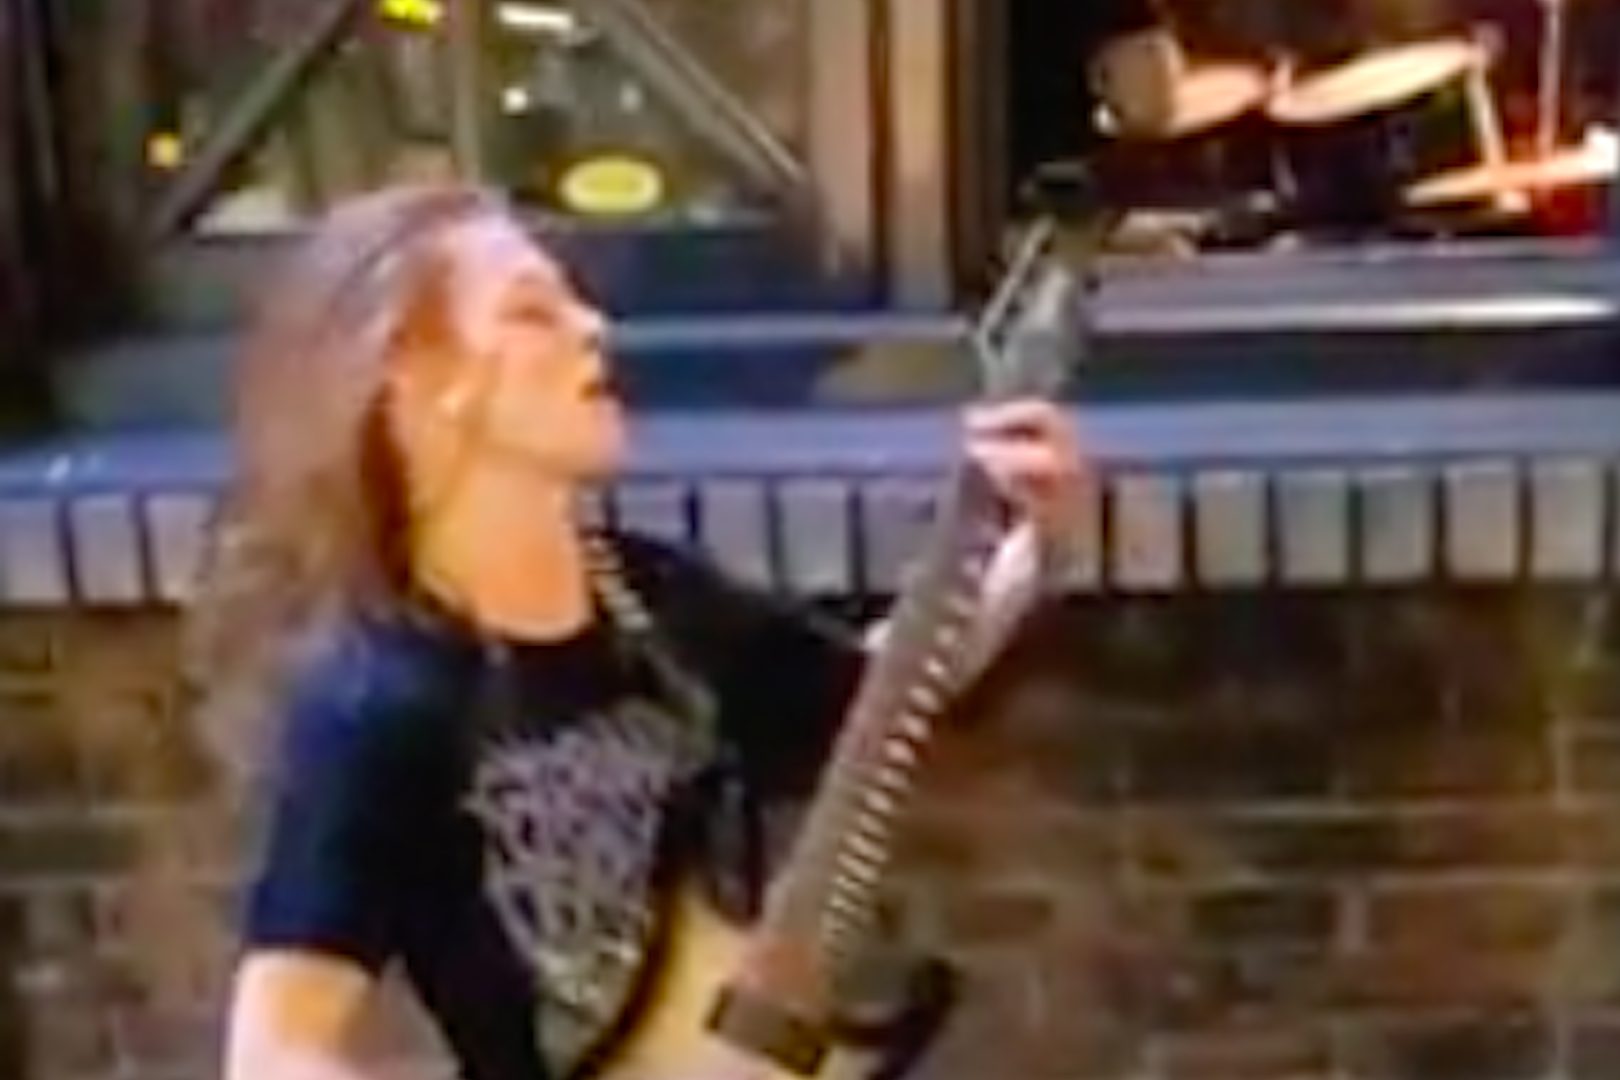 Guitarist Too Young to Play in Venue, Still Shreds on Street Corner